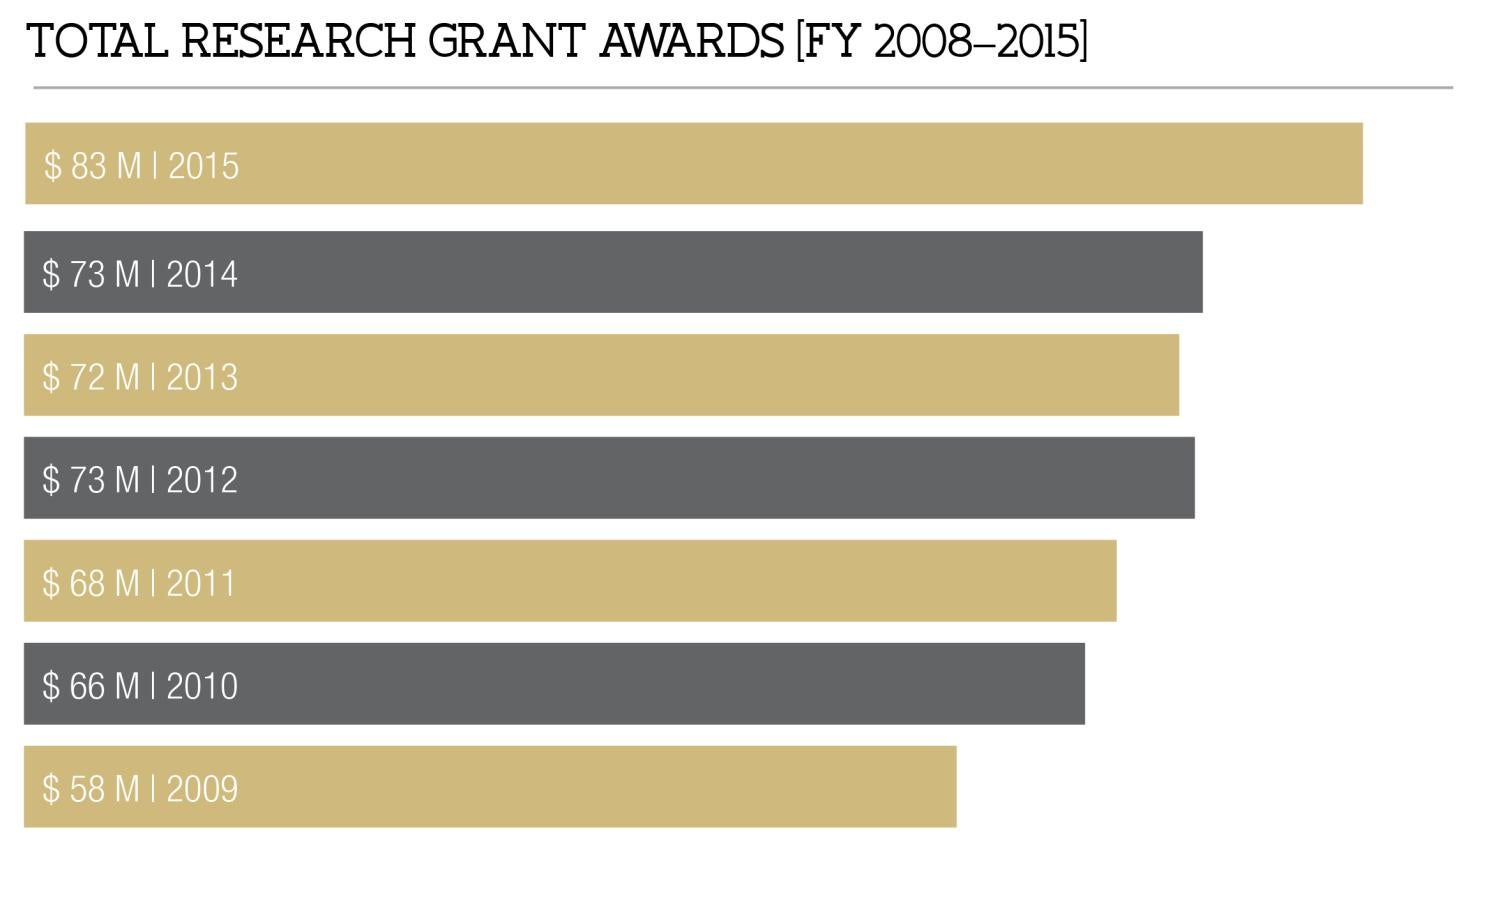 Total Research Grant Awards [FY 2008-2015]